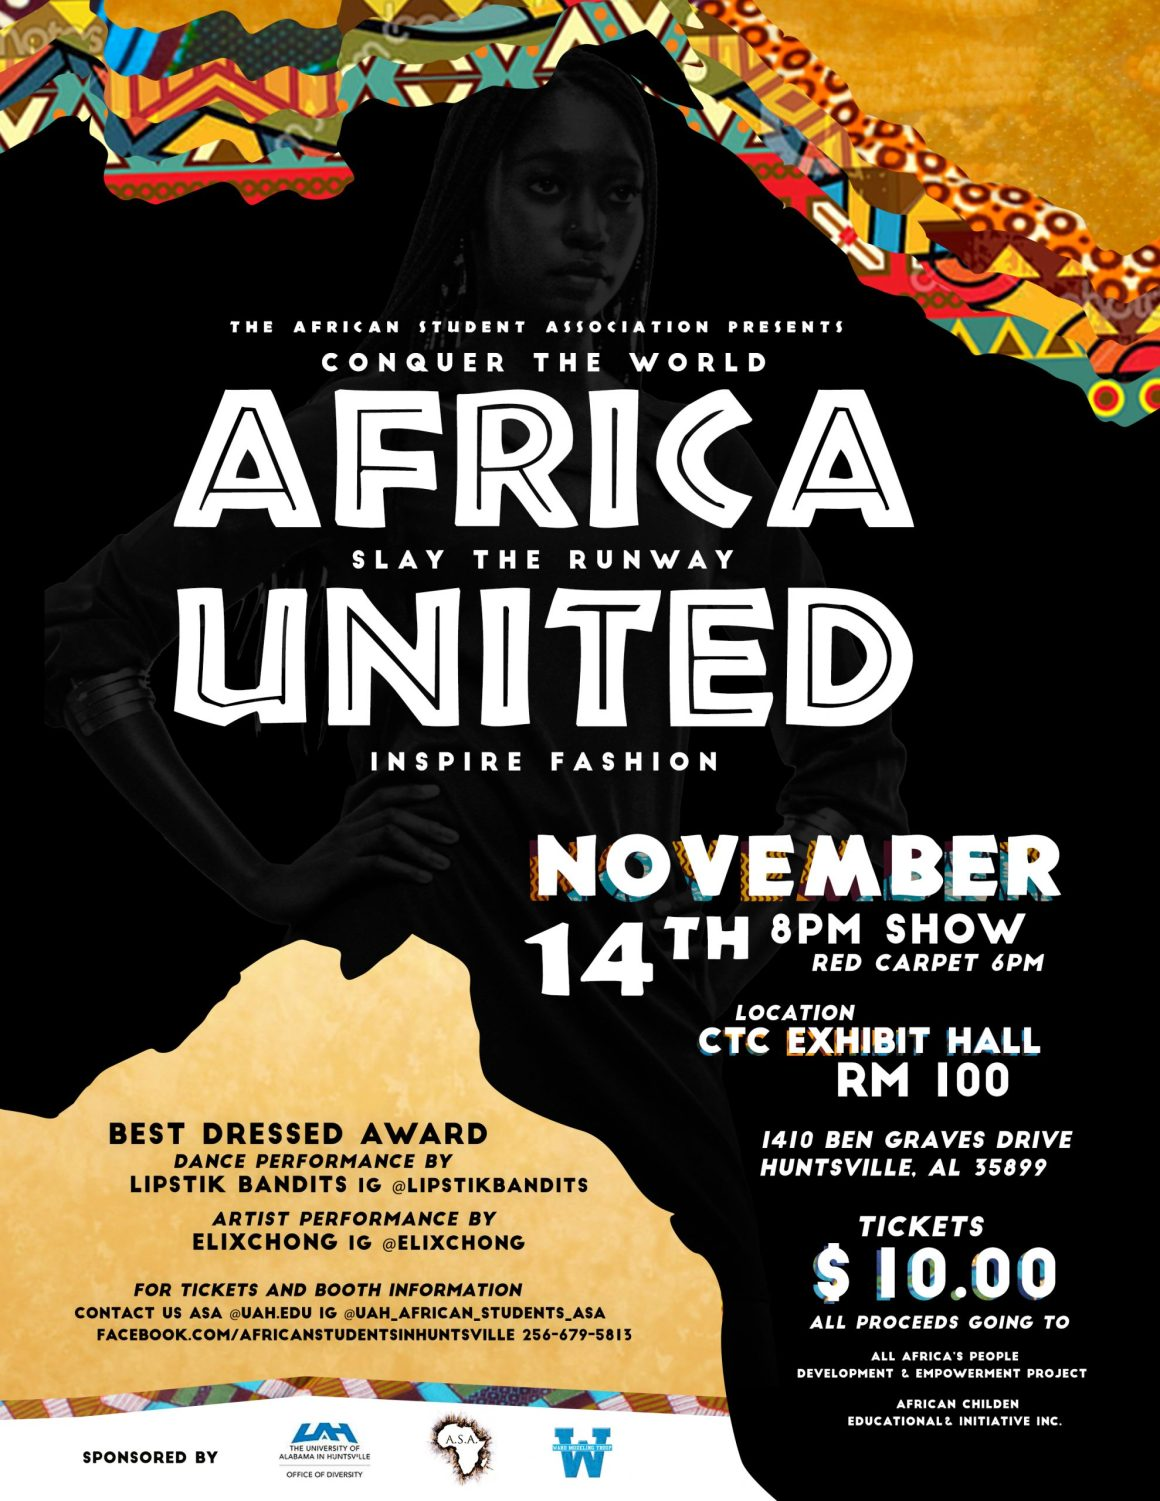 Africa United Fashion Show to Raise Resources for African Development